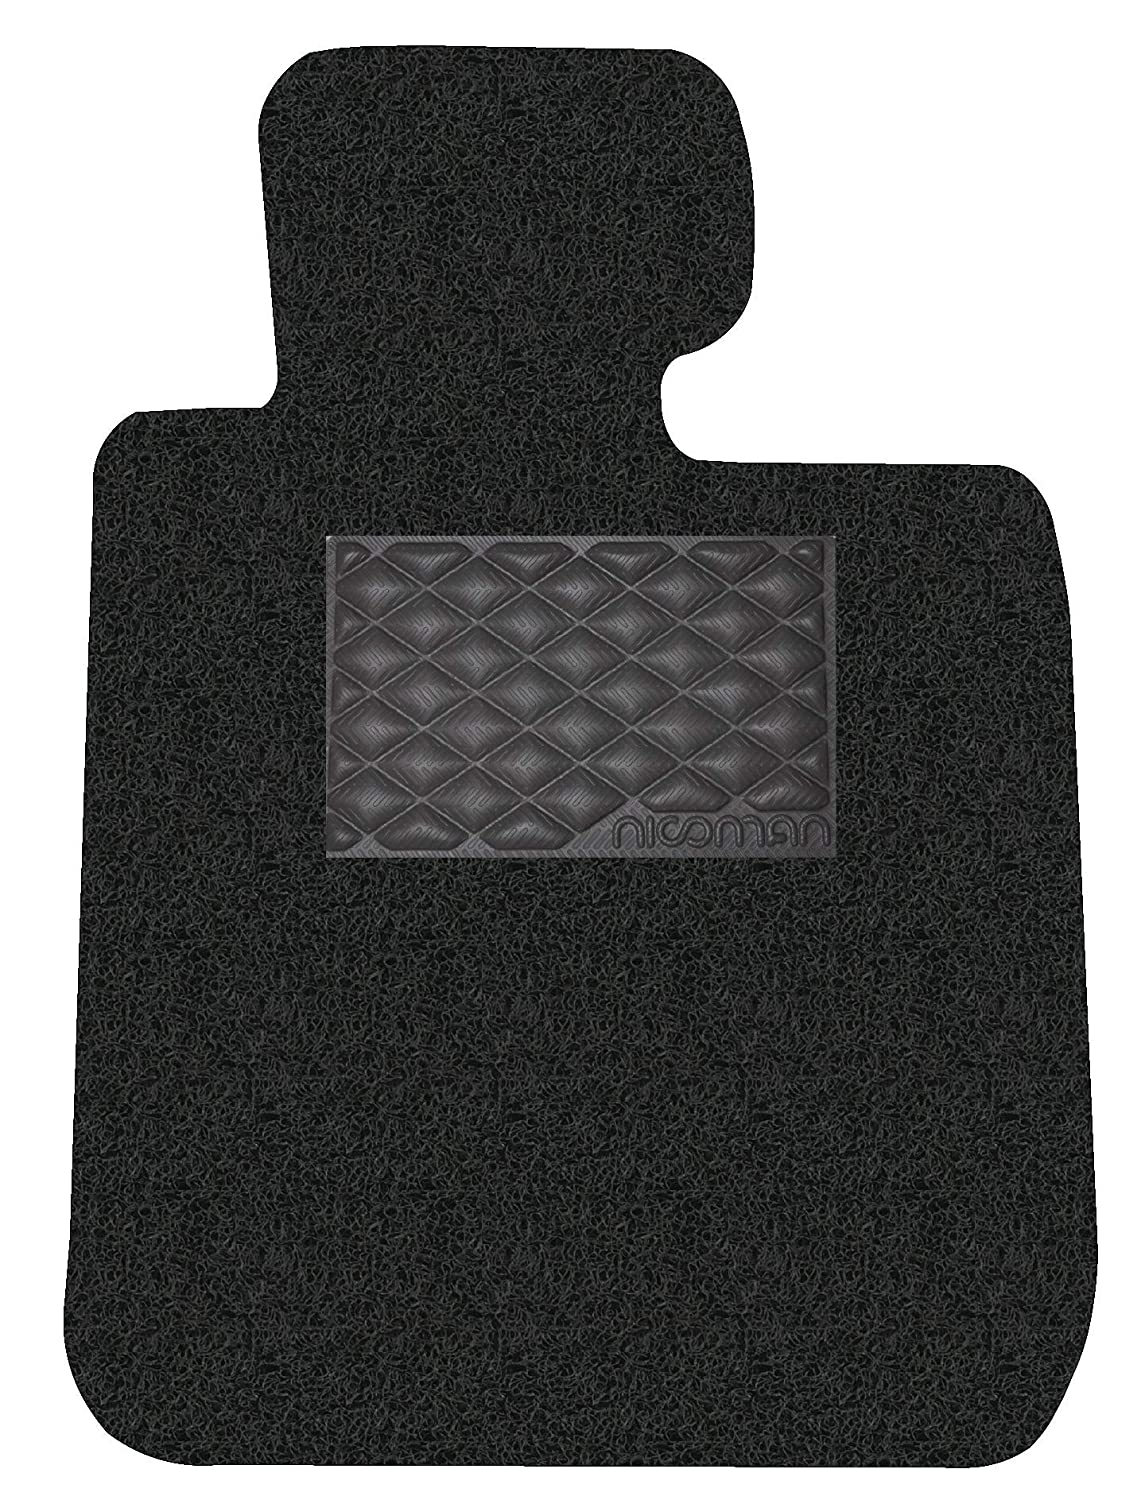 Nicoman Spaghetti All-Weather Fully Tailored Car mats Fit【1-Series Coupe//Cabriolet E82//E88 Year 2008-2016】 Full Set 4-Piece,Black